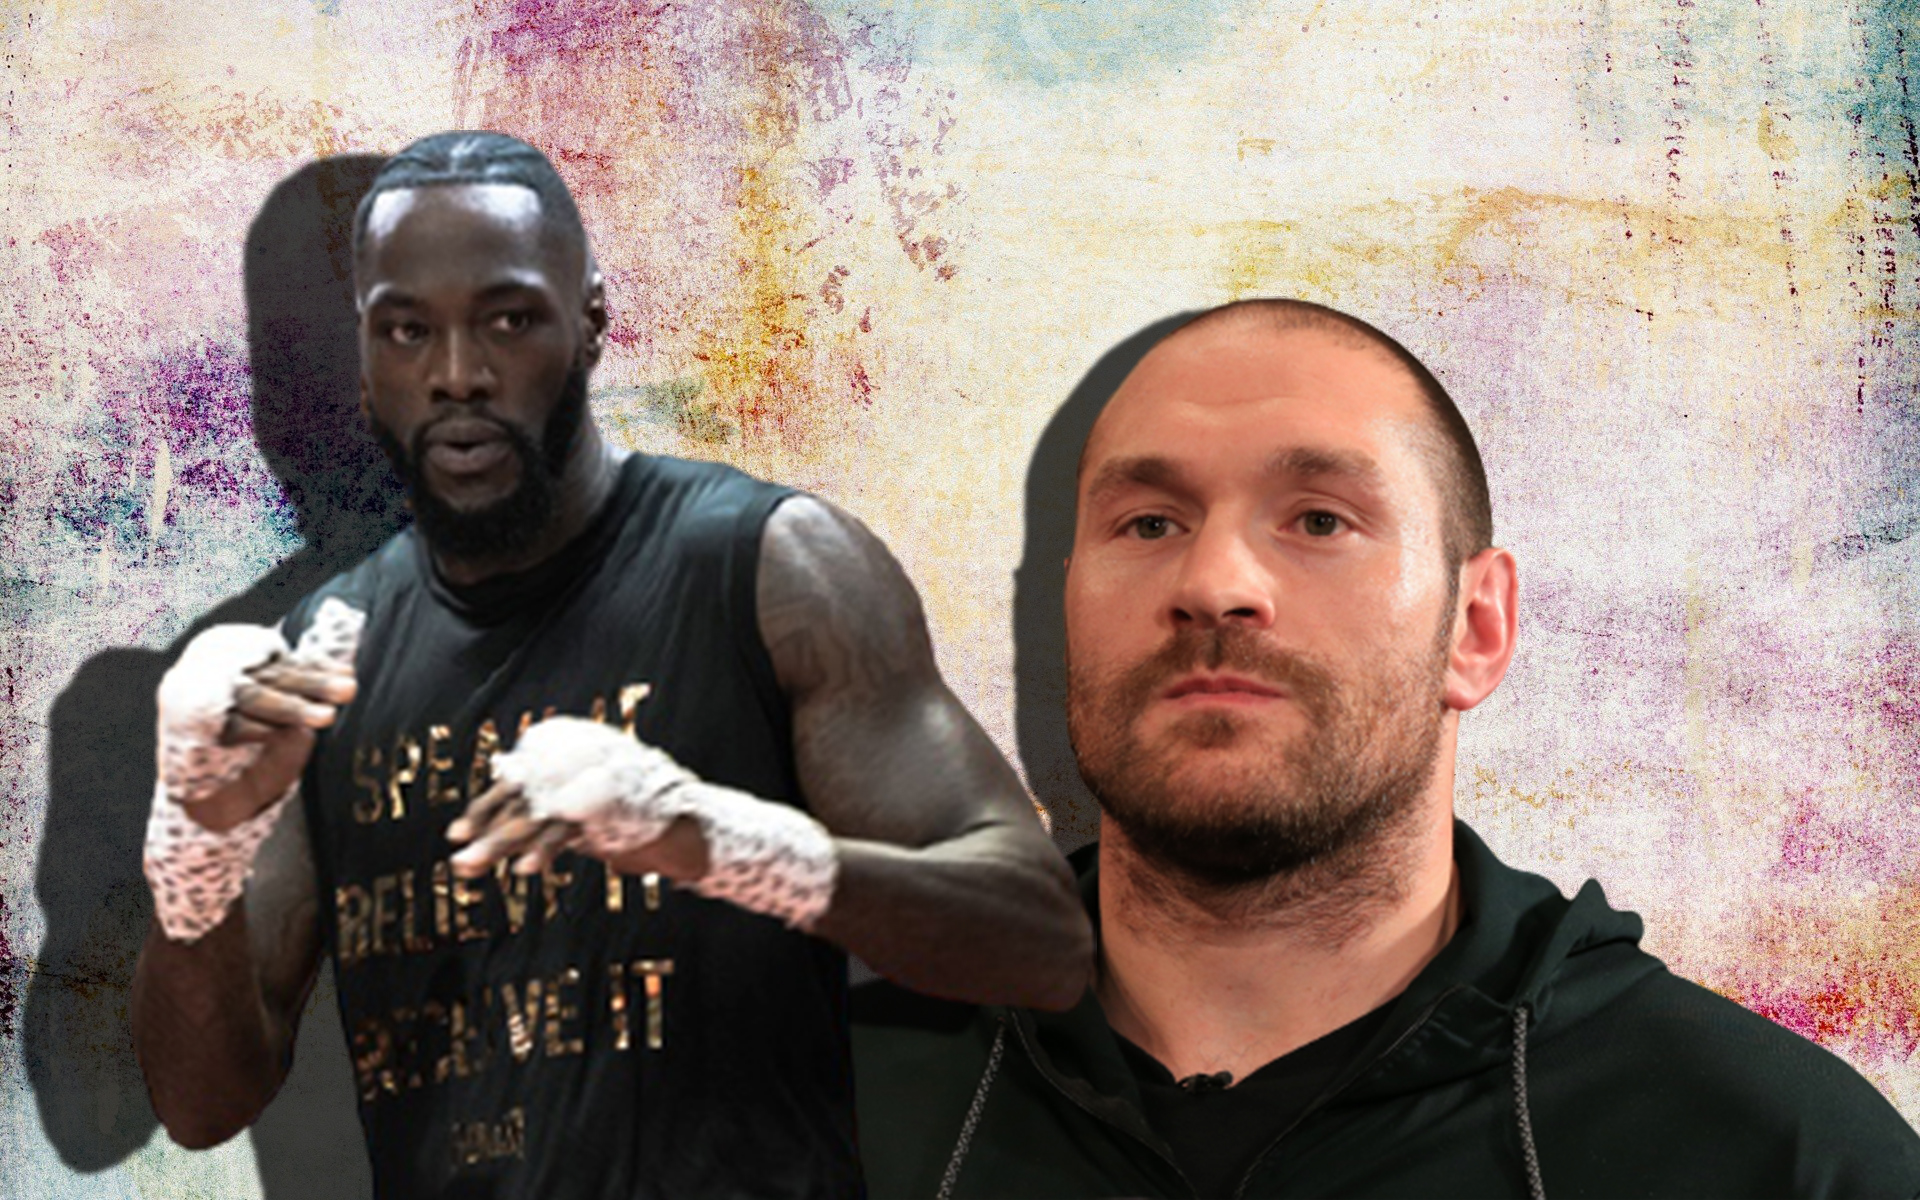 Tyson Fury offered Deontay Wilder help in dealing with psychological problems.